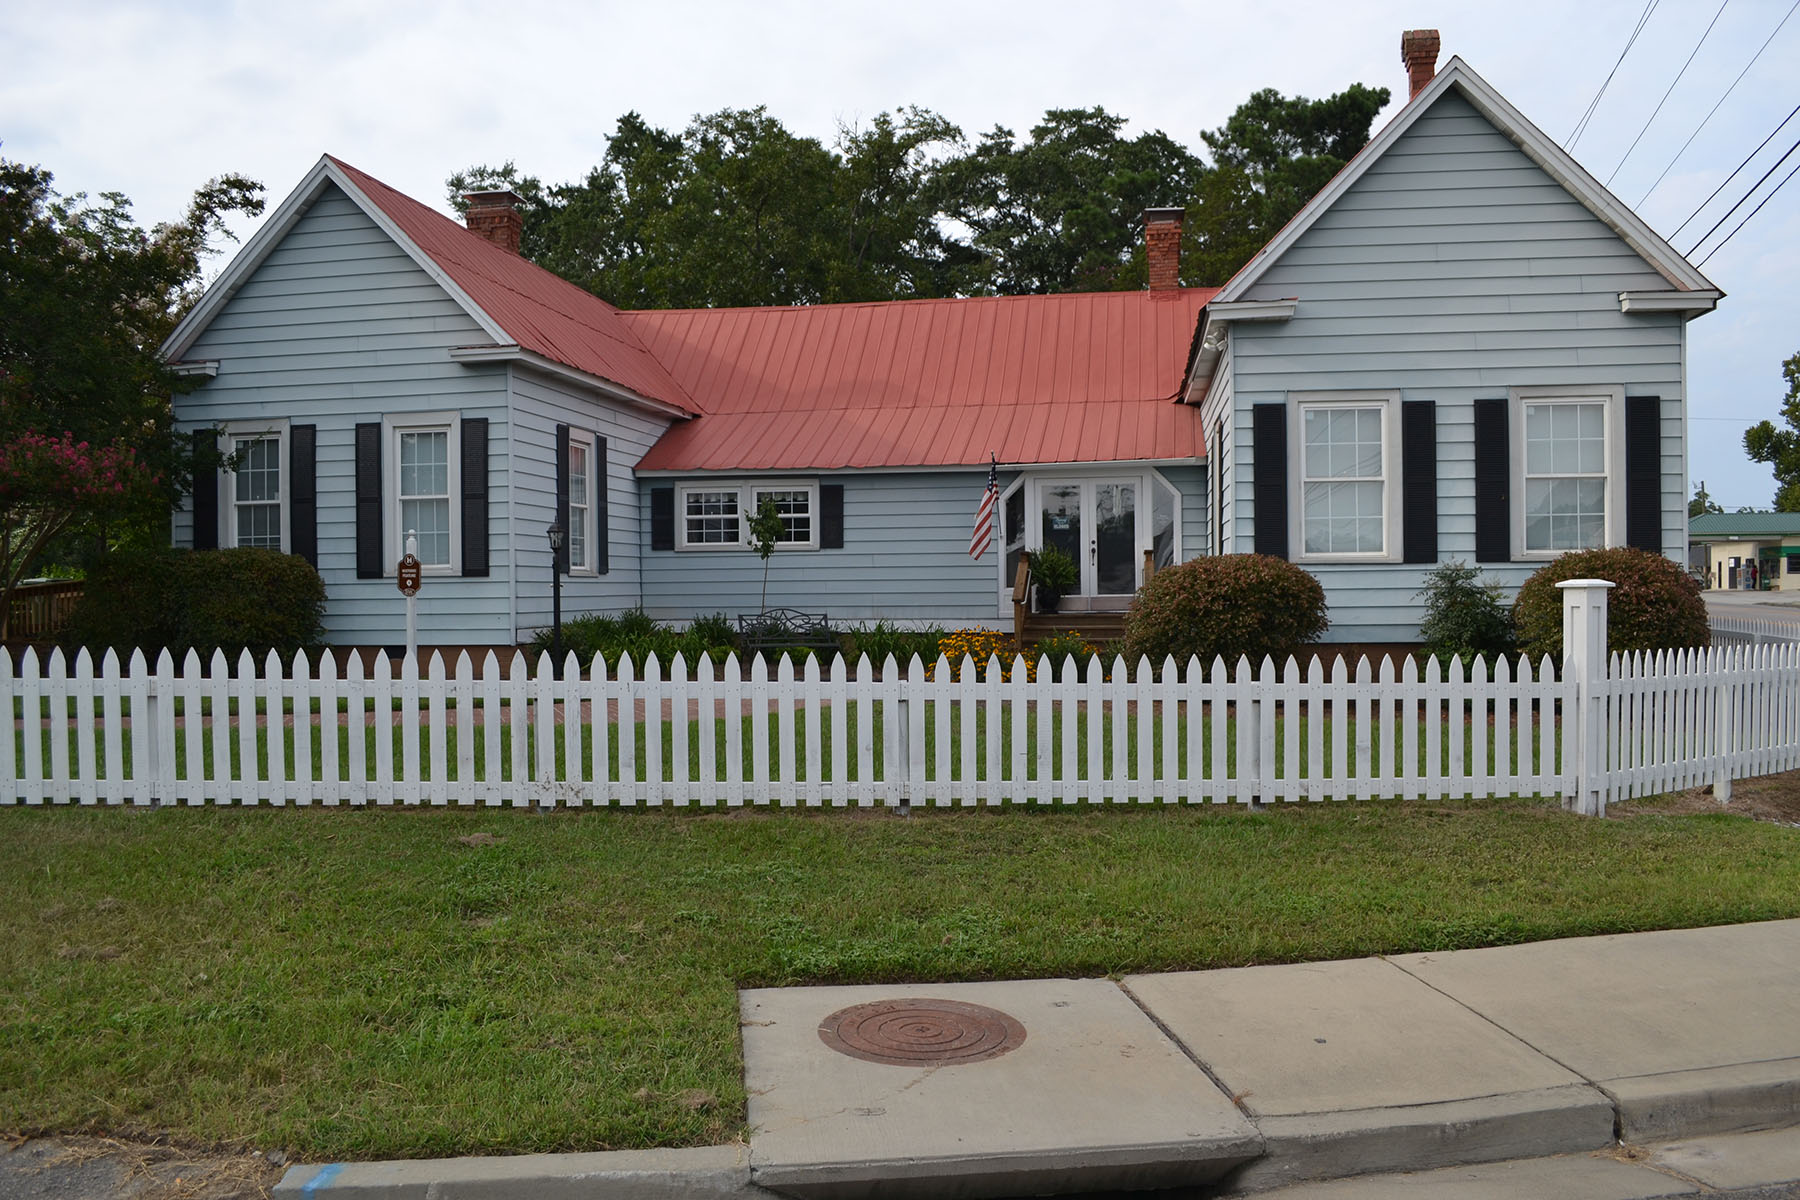 Langford/Nord House built in 1895.  Now home of the Blythewood HistoricalSociety.  Photo by Jim McLean